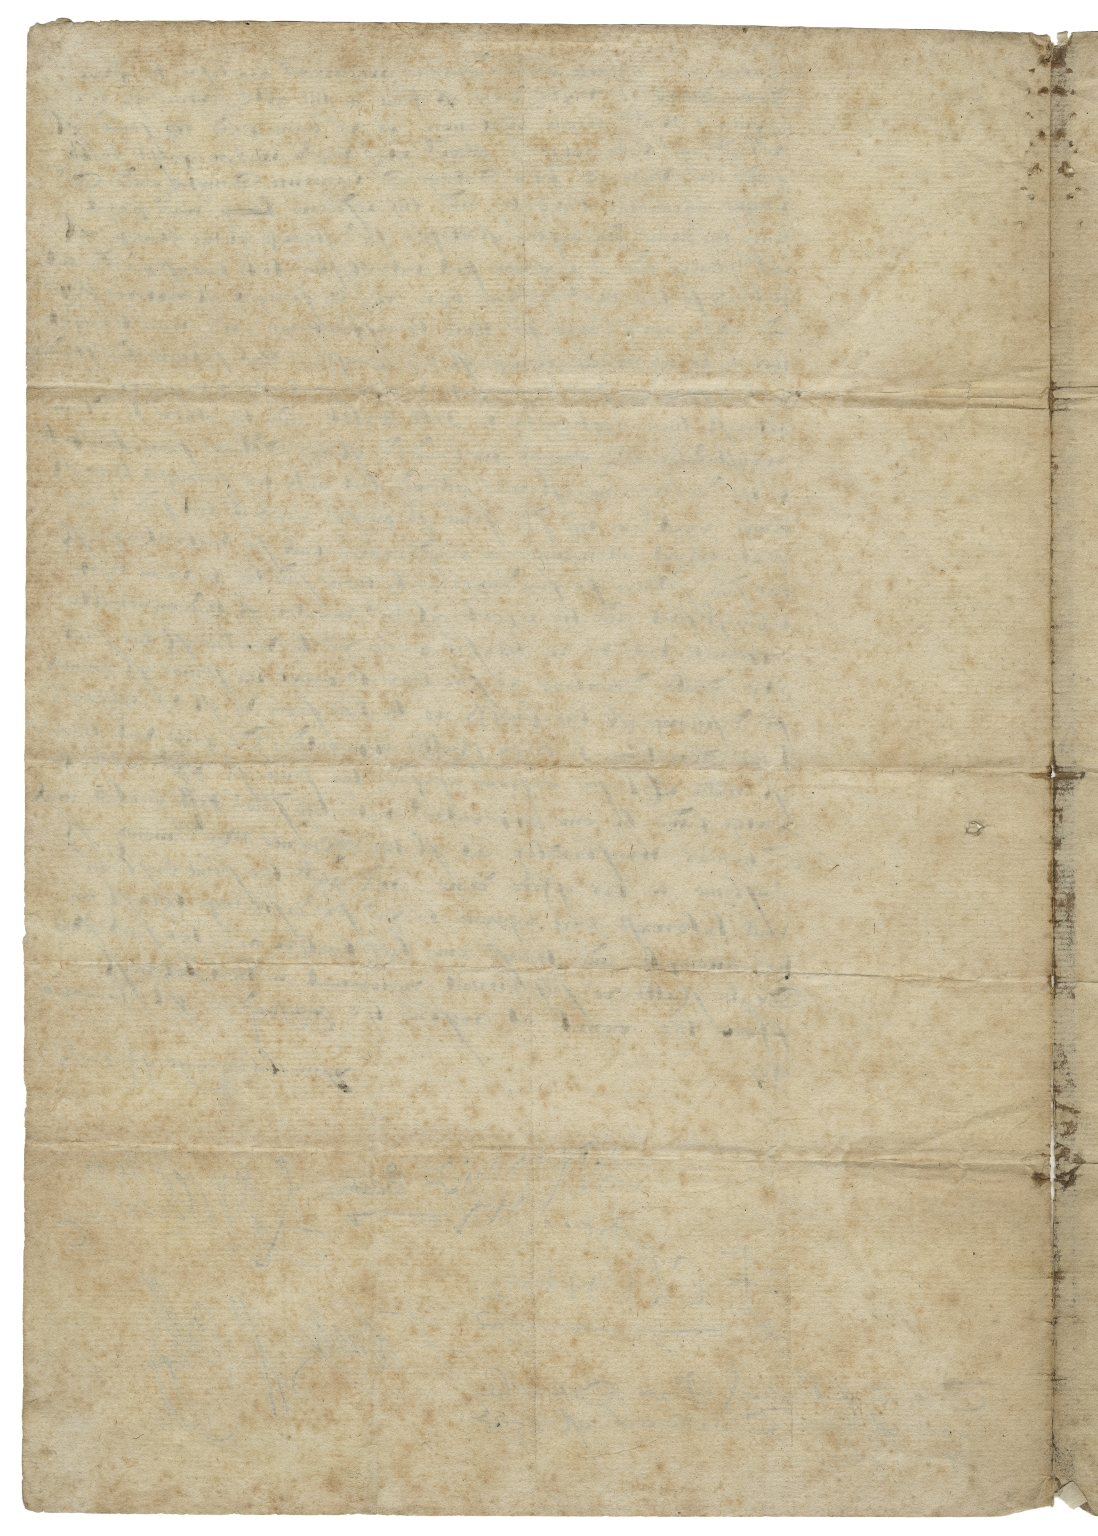 Letter signed from the Privy Council, Westminster, to William Paulet, Marquis of Winchester, Lord Treasurer of England and Sir Walter Mildmay, Chancellor and Treasurer of the Exchequer